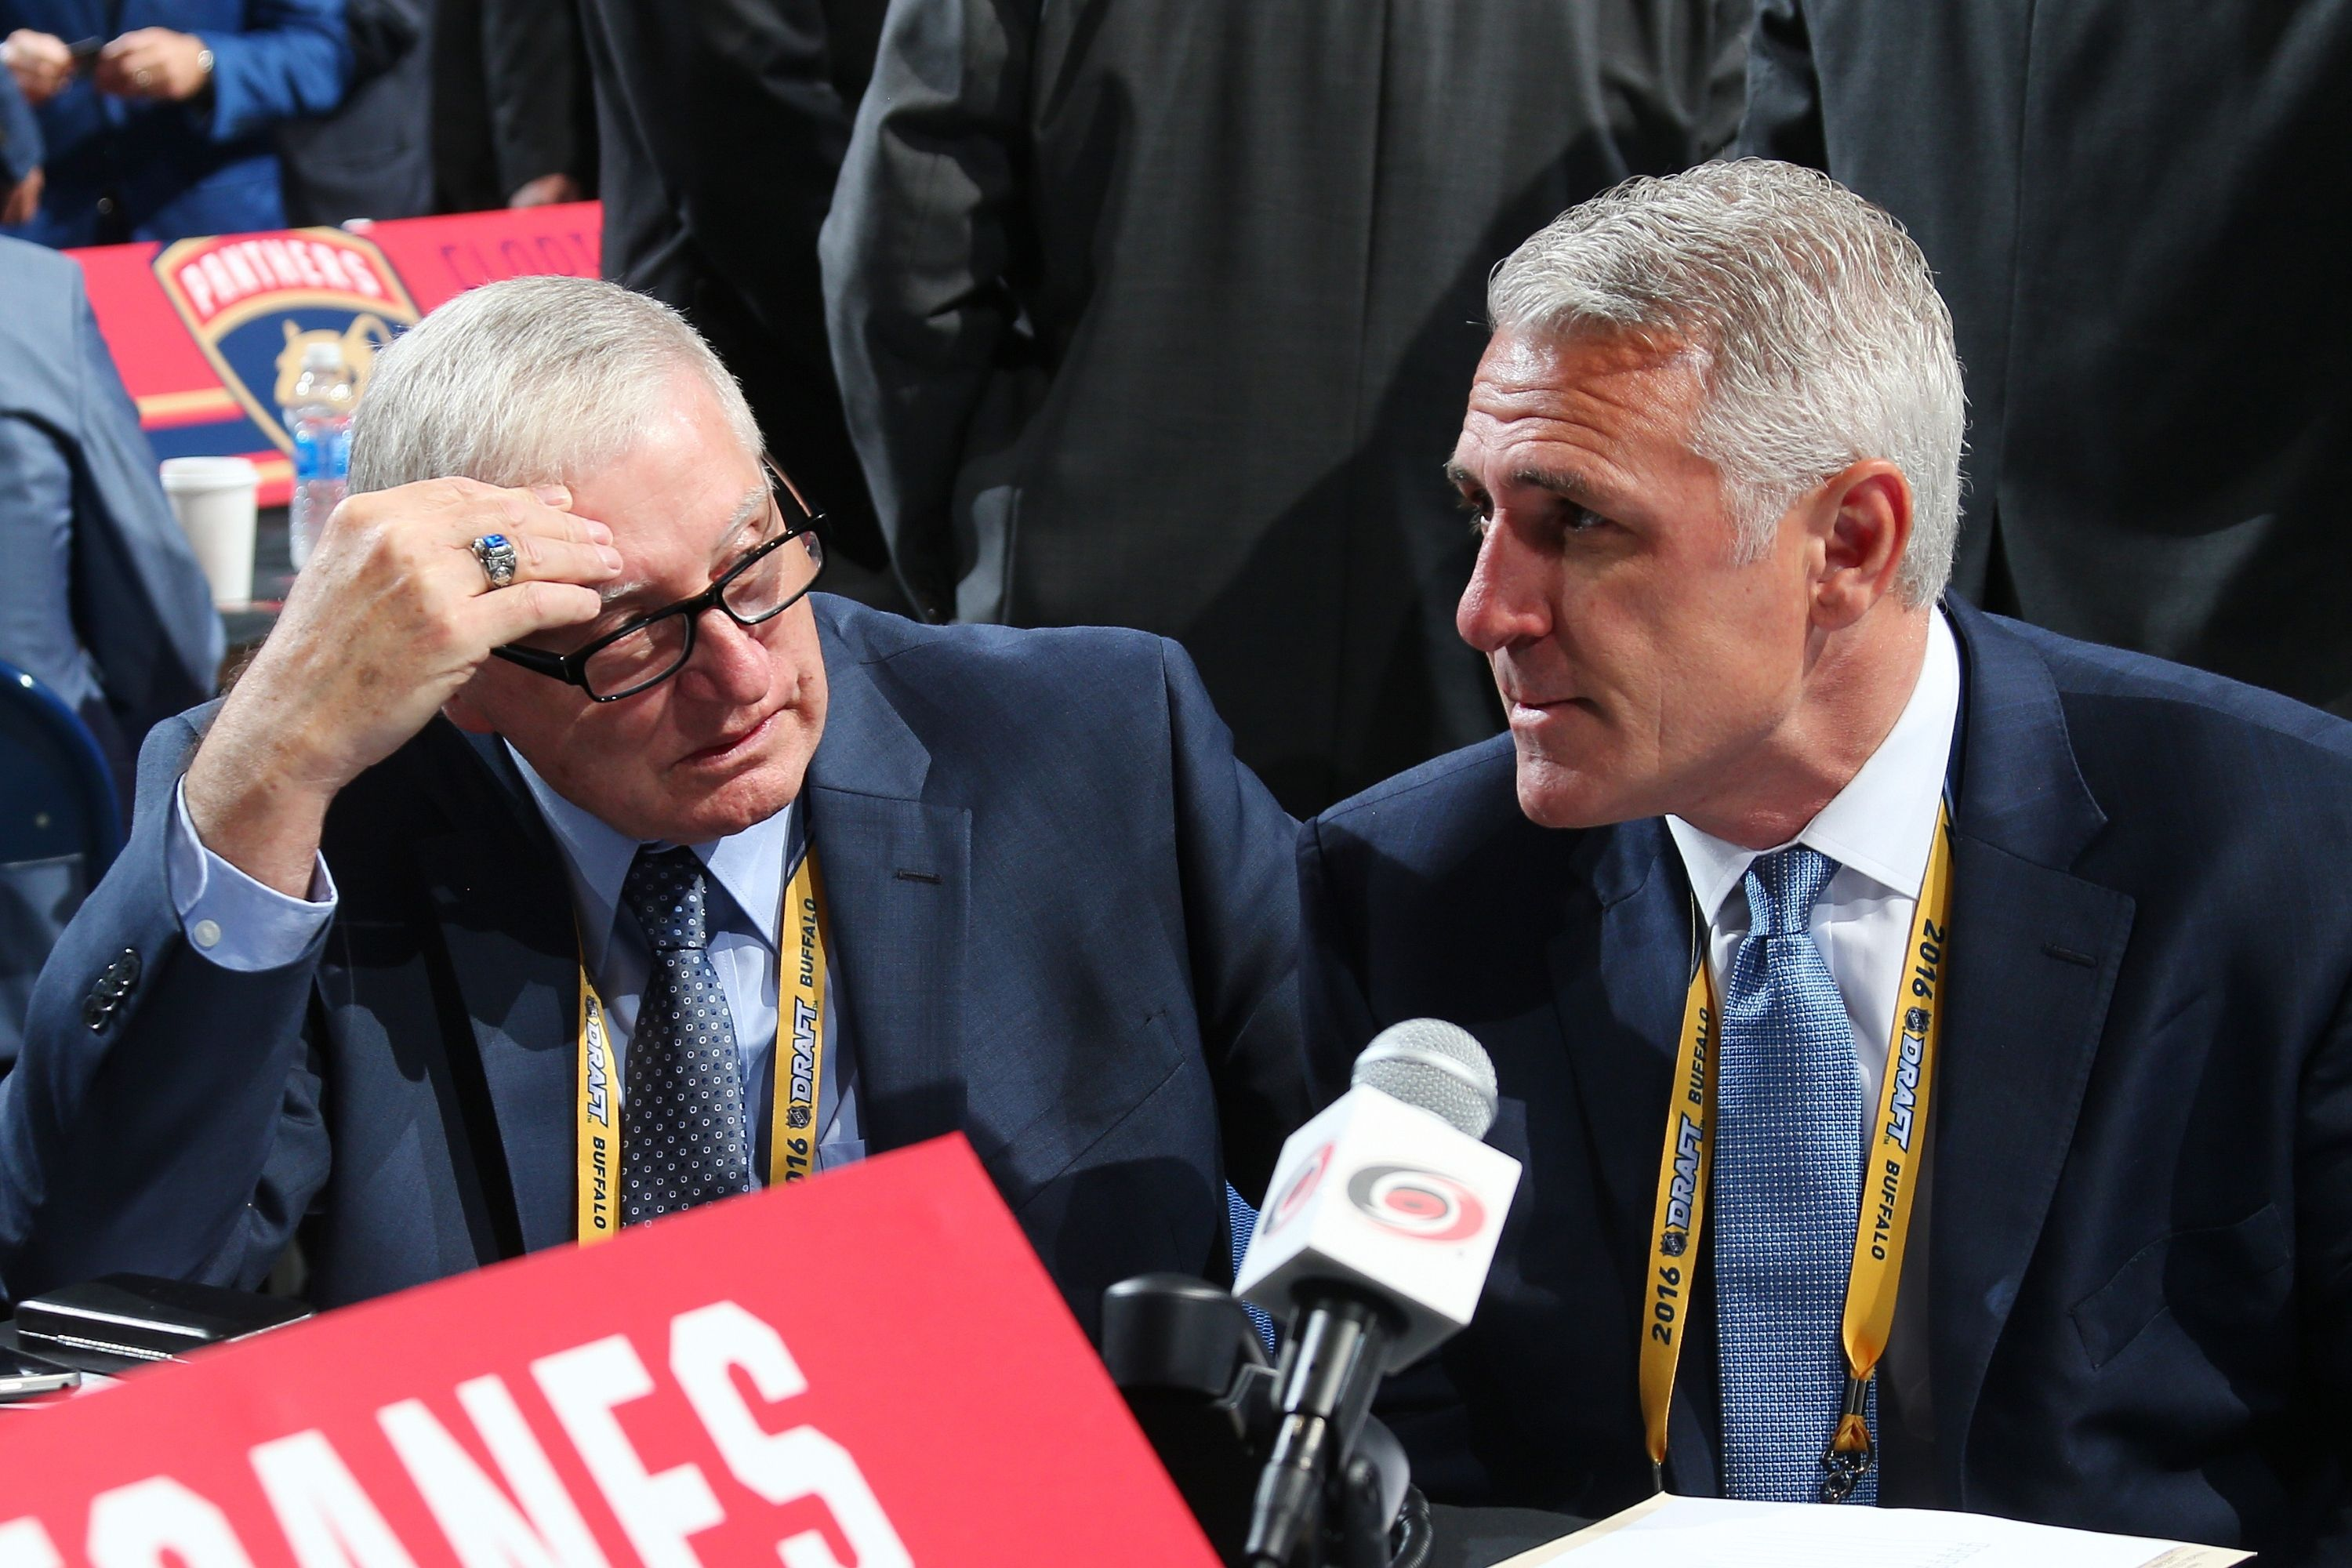 New Hurricanes Owner Neuters Ron Francis Control Over